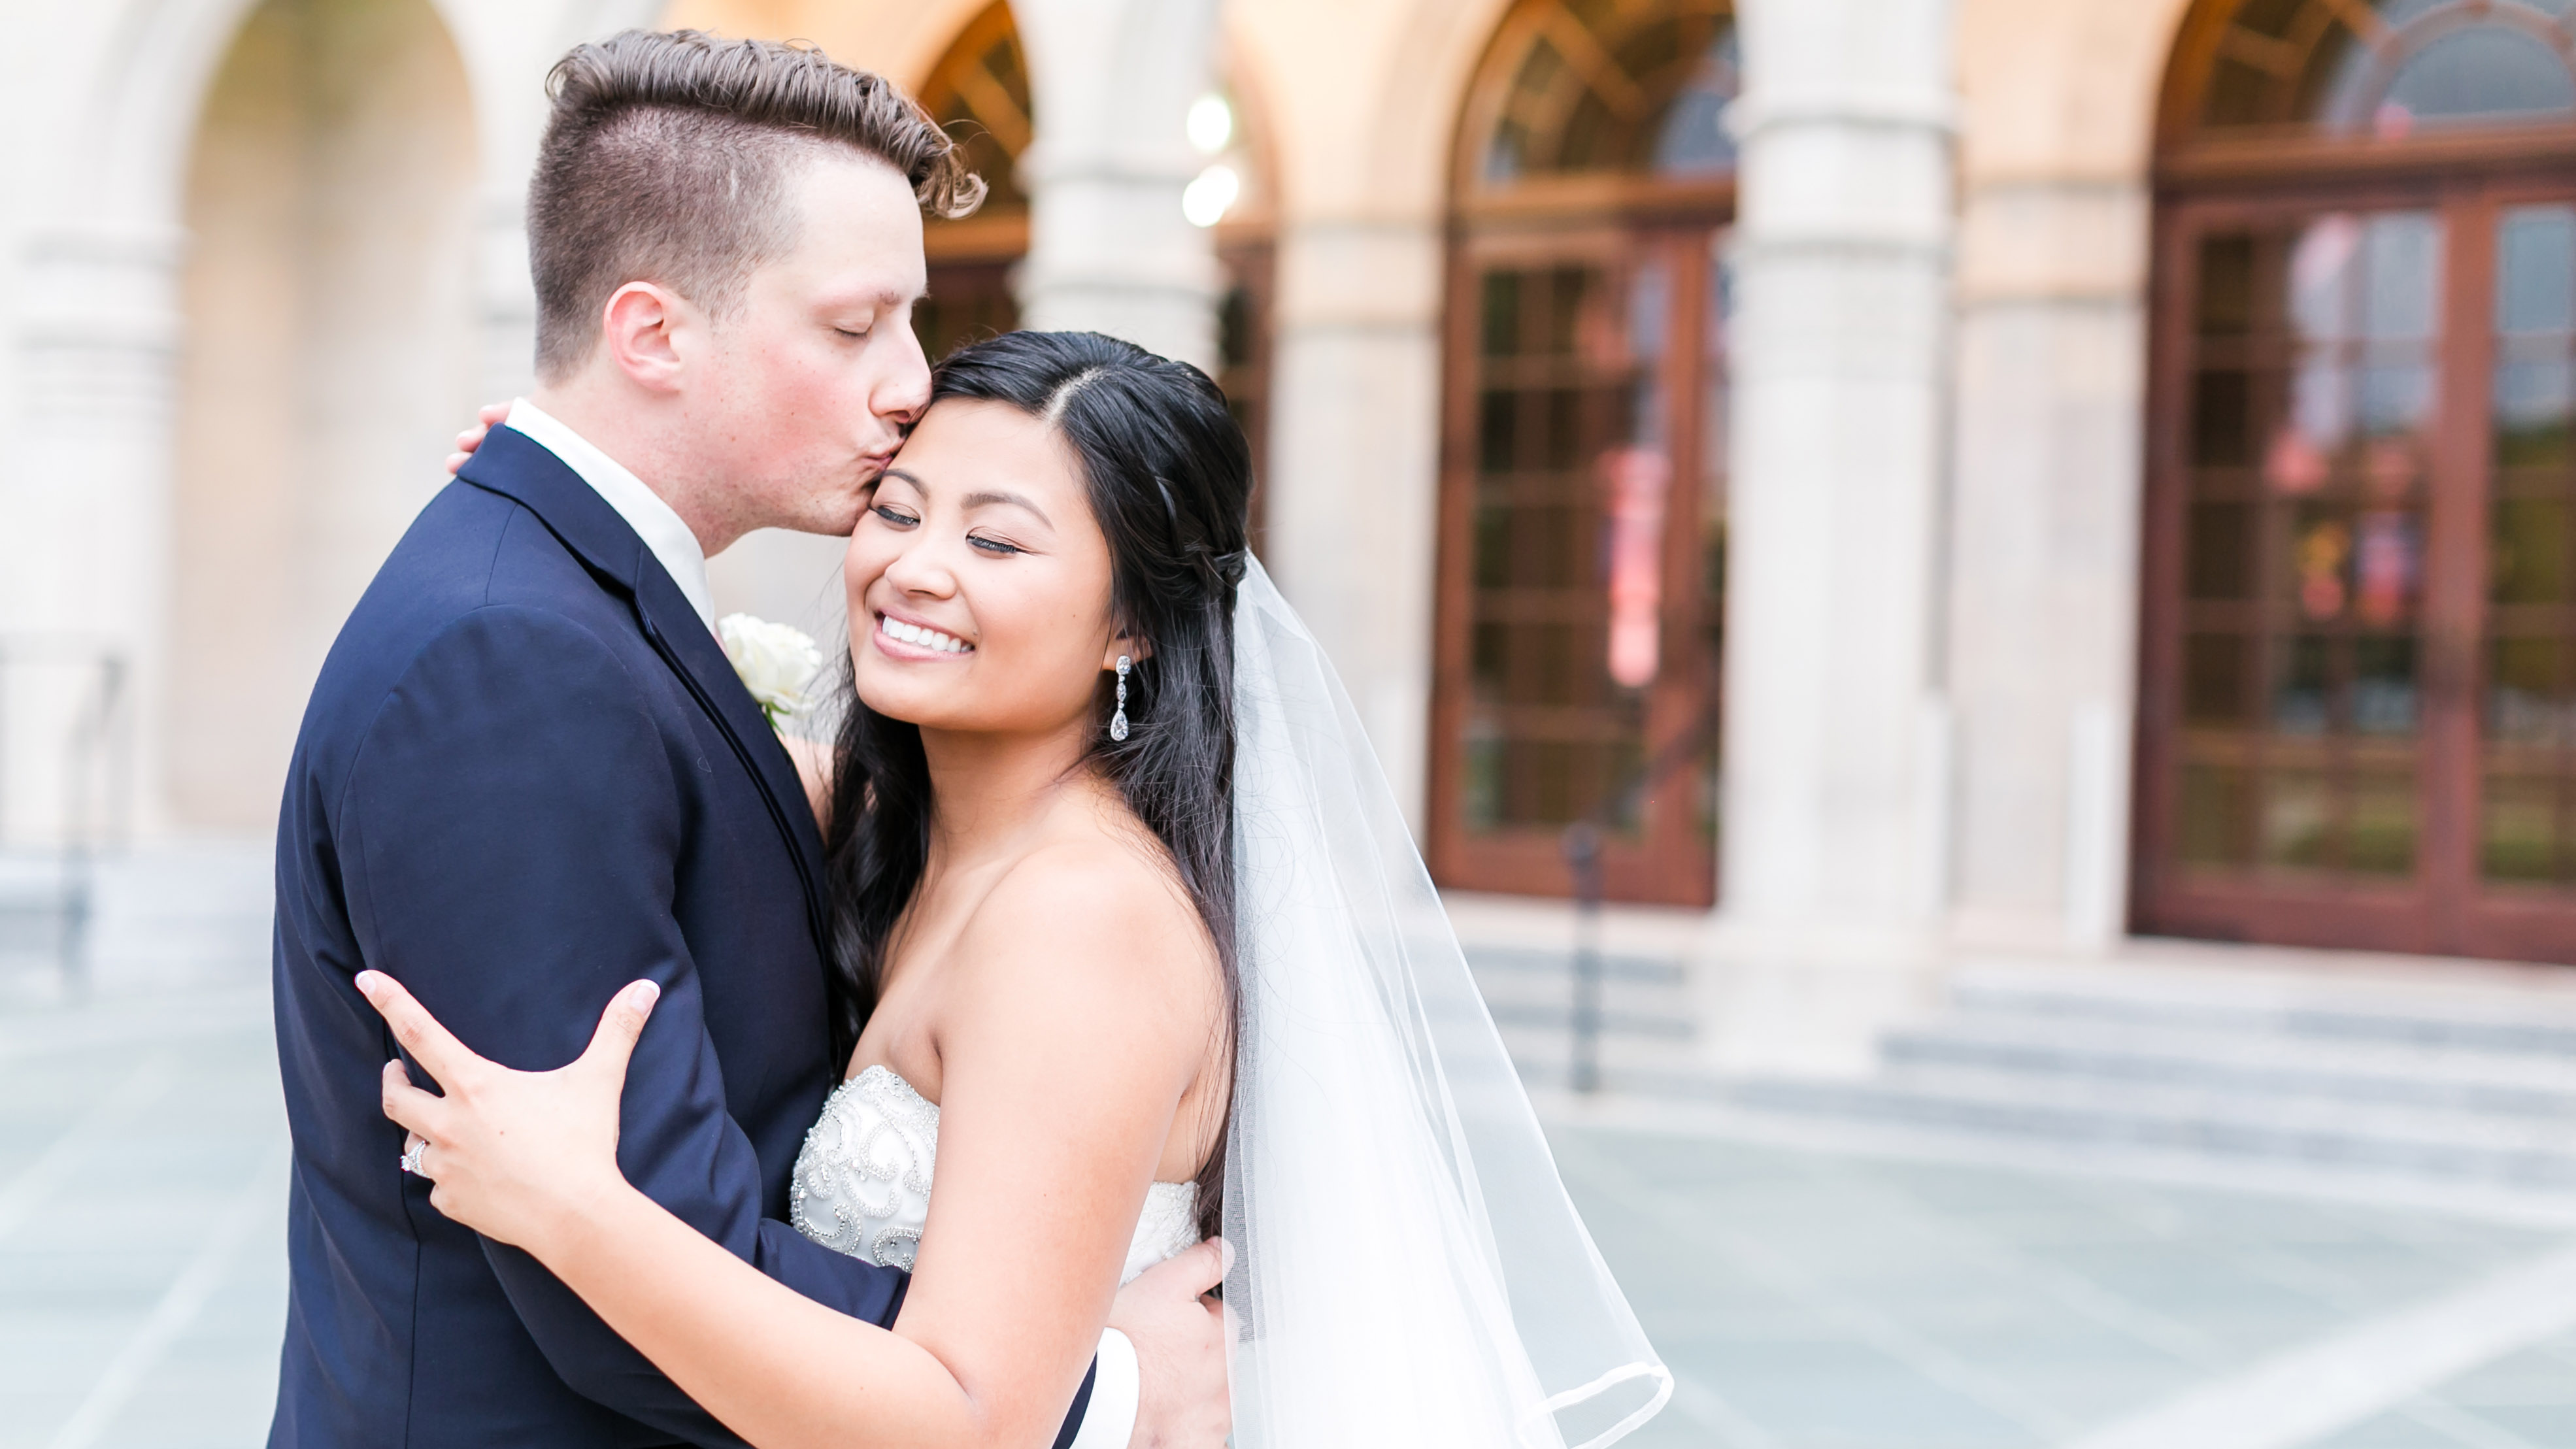 jessica_ryan_photography_chrylser_museum_of_art_wedding_norfolk_virginia_wedding_photographer_classic_bride_elegant_bride_groom